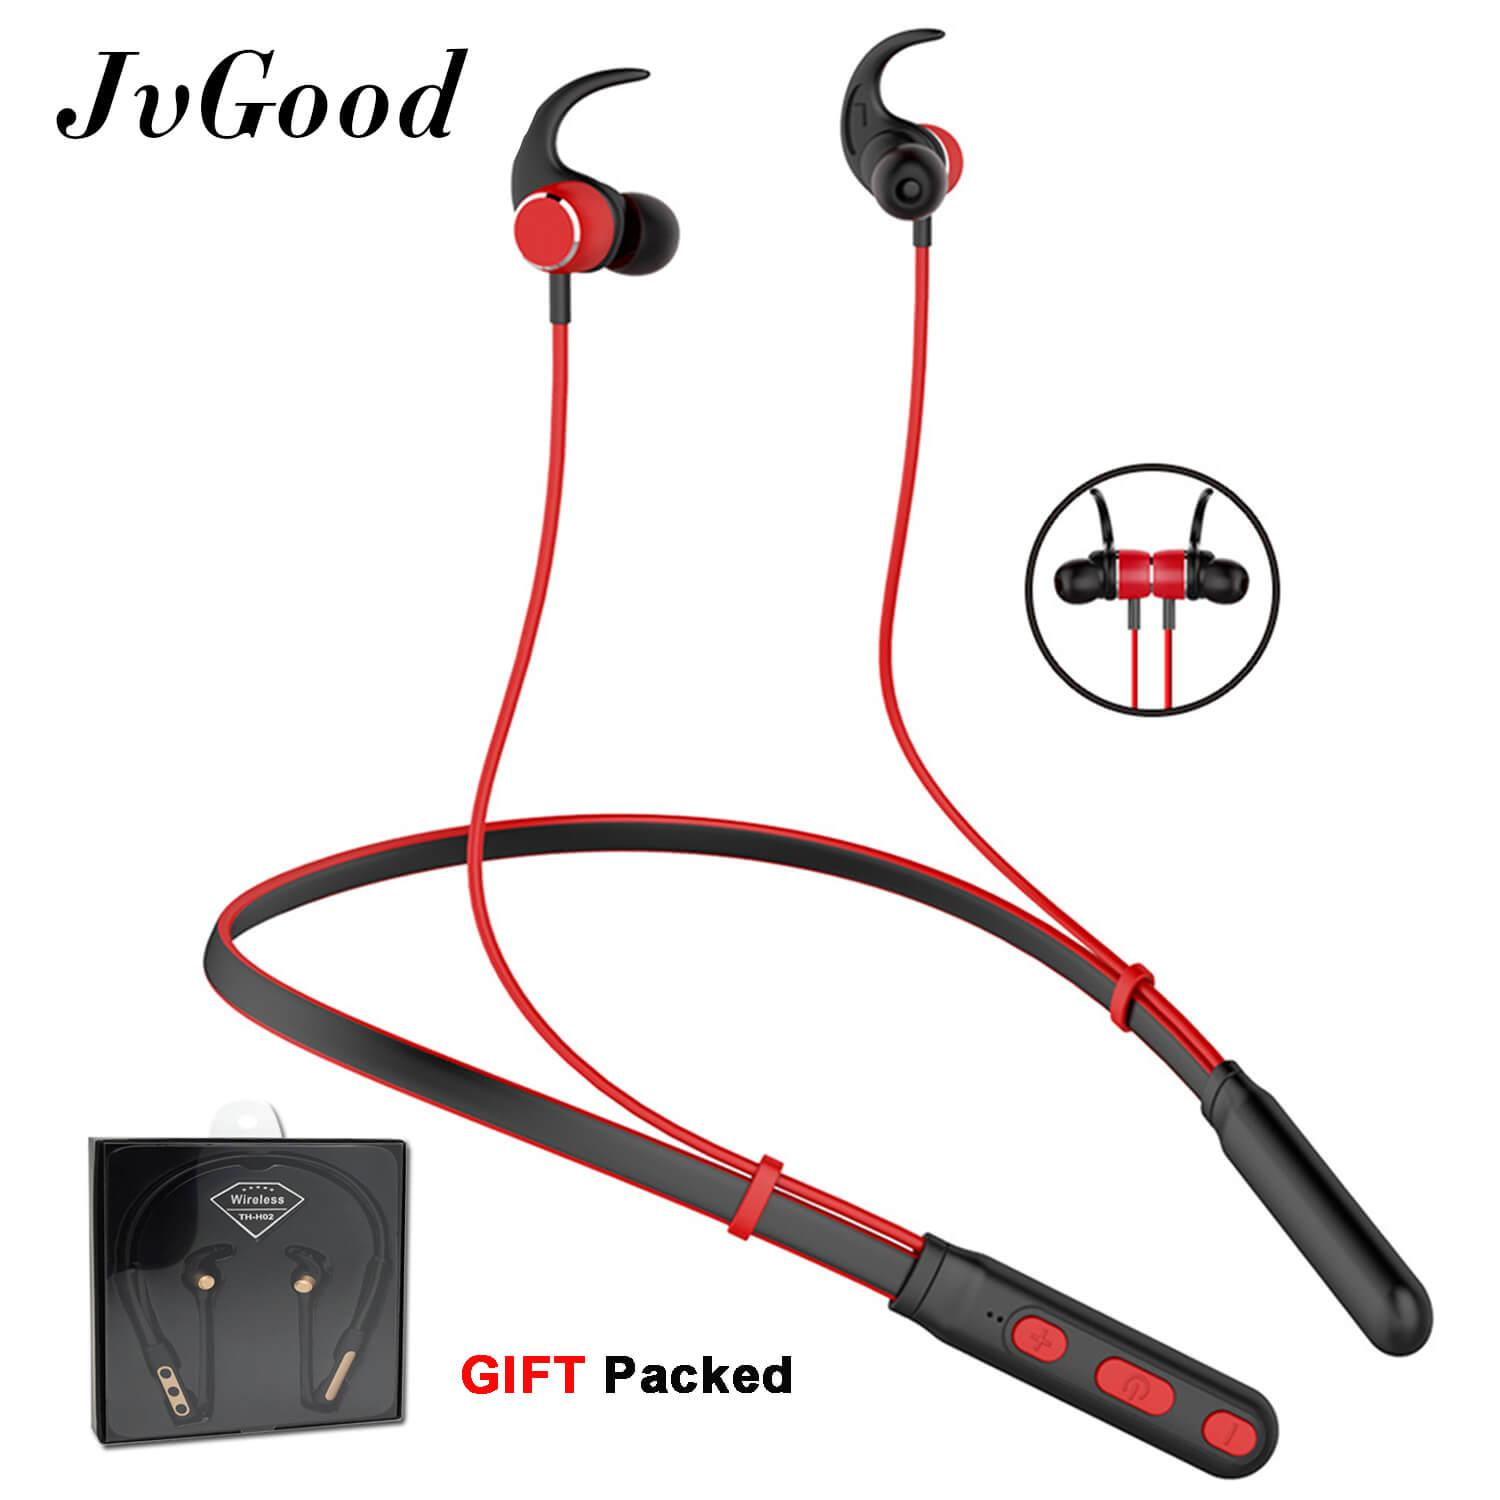 JvGood Bluetooth Headphones Wireless Headset Stereo Neckband Sport Earbuds with Mic HIFI Stereo Noise Cancelling Earbuds